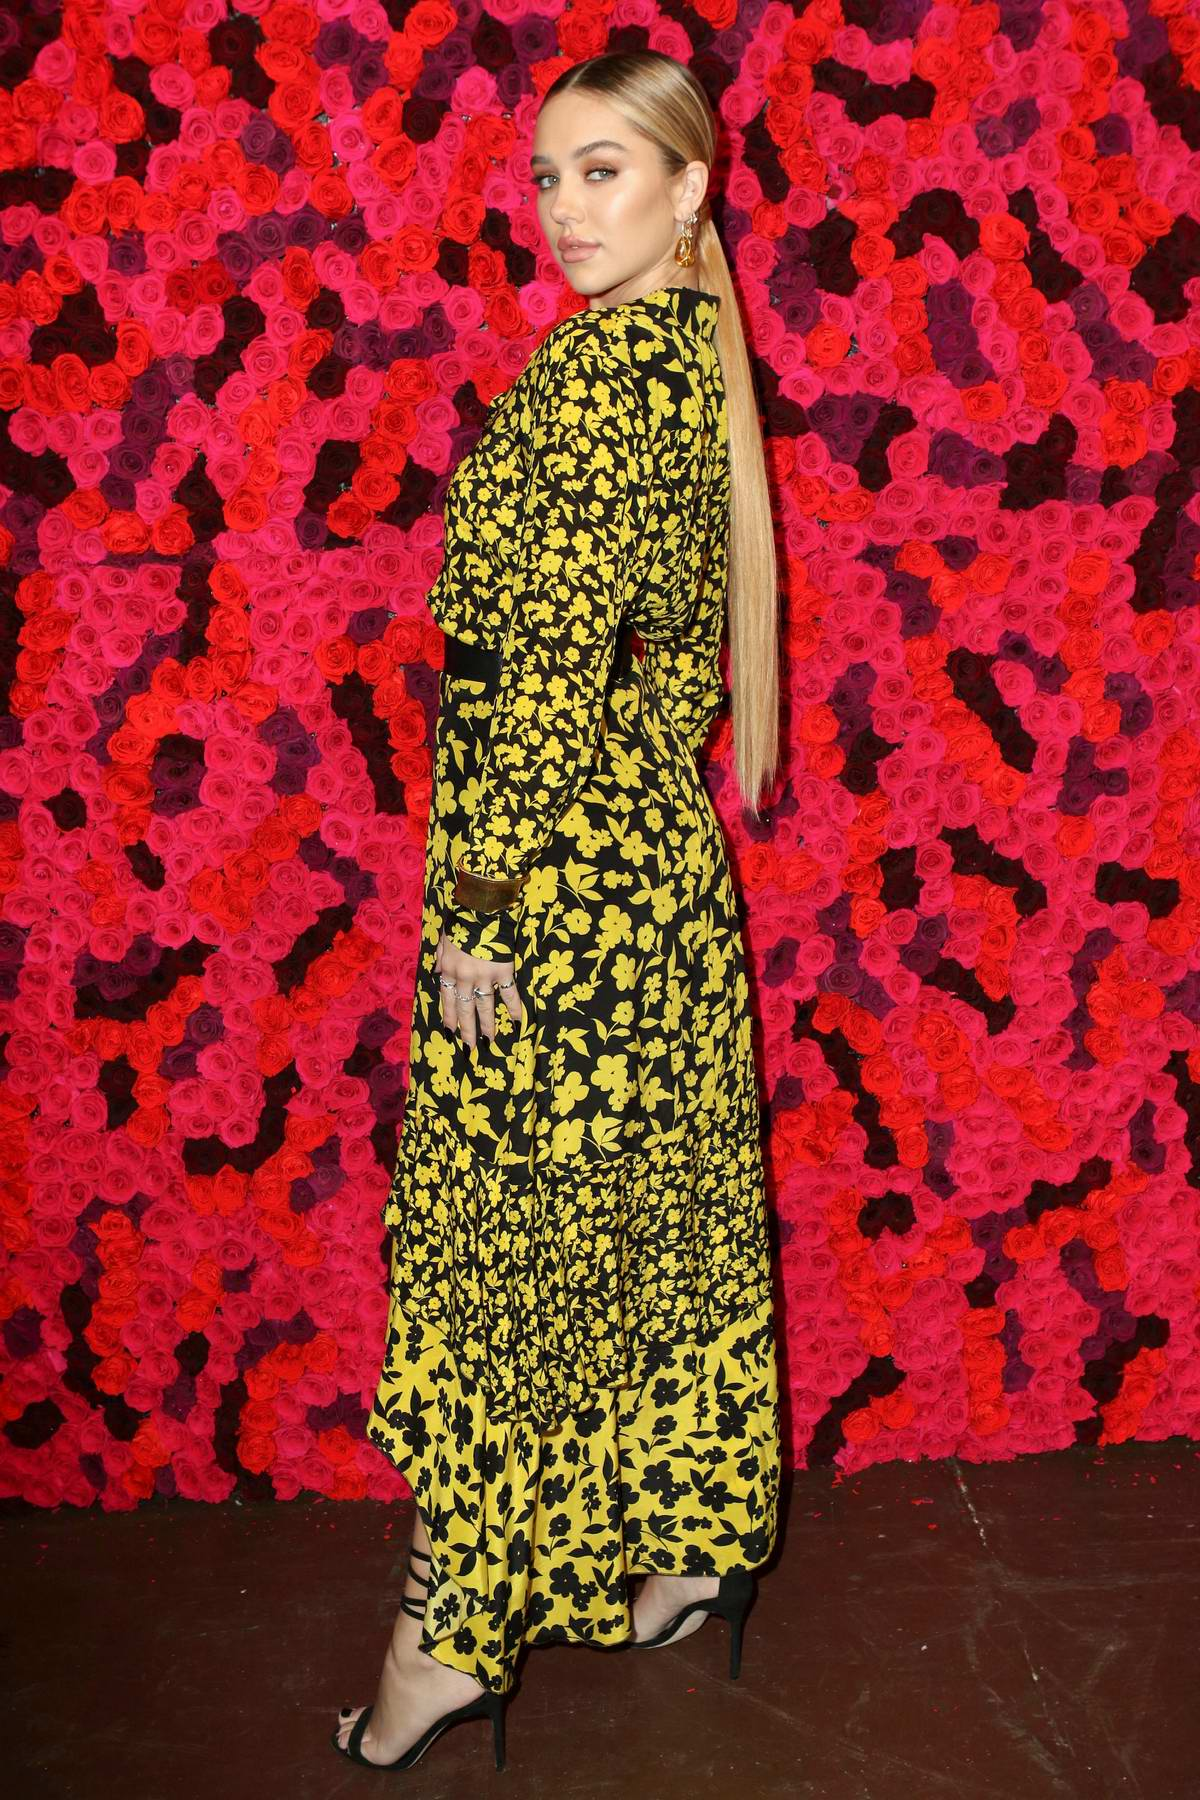 Delilah Belle Hamlin attends the Alice + Olivia fashion show during New York Fashion Week in New York City